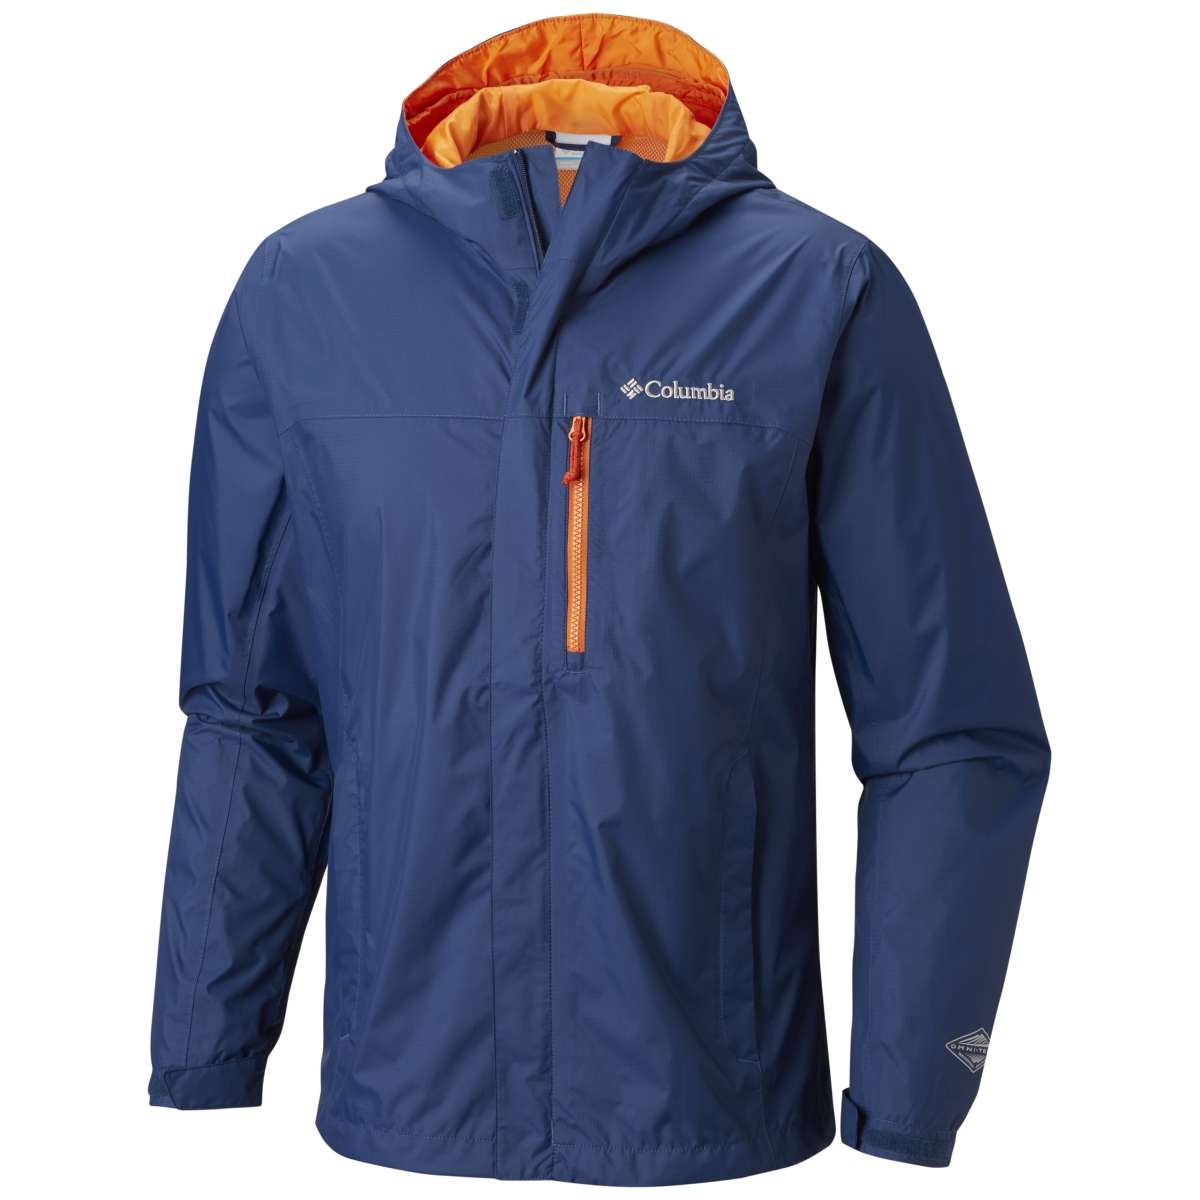 Columbia Pouring Adventure II Jacket Carbon S